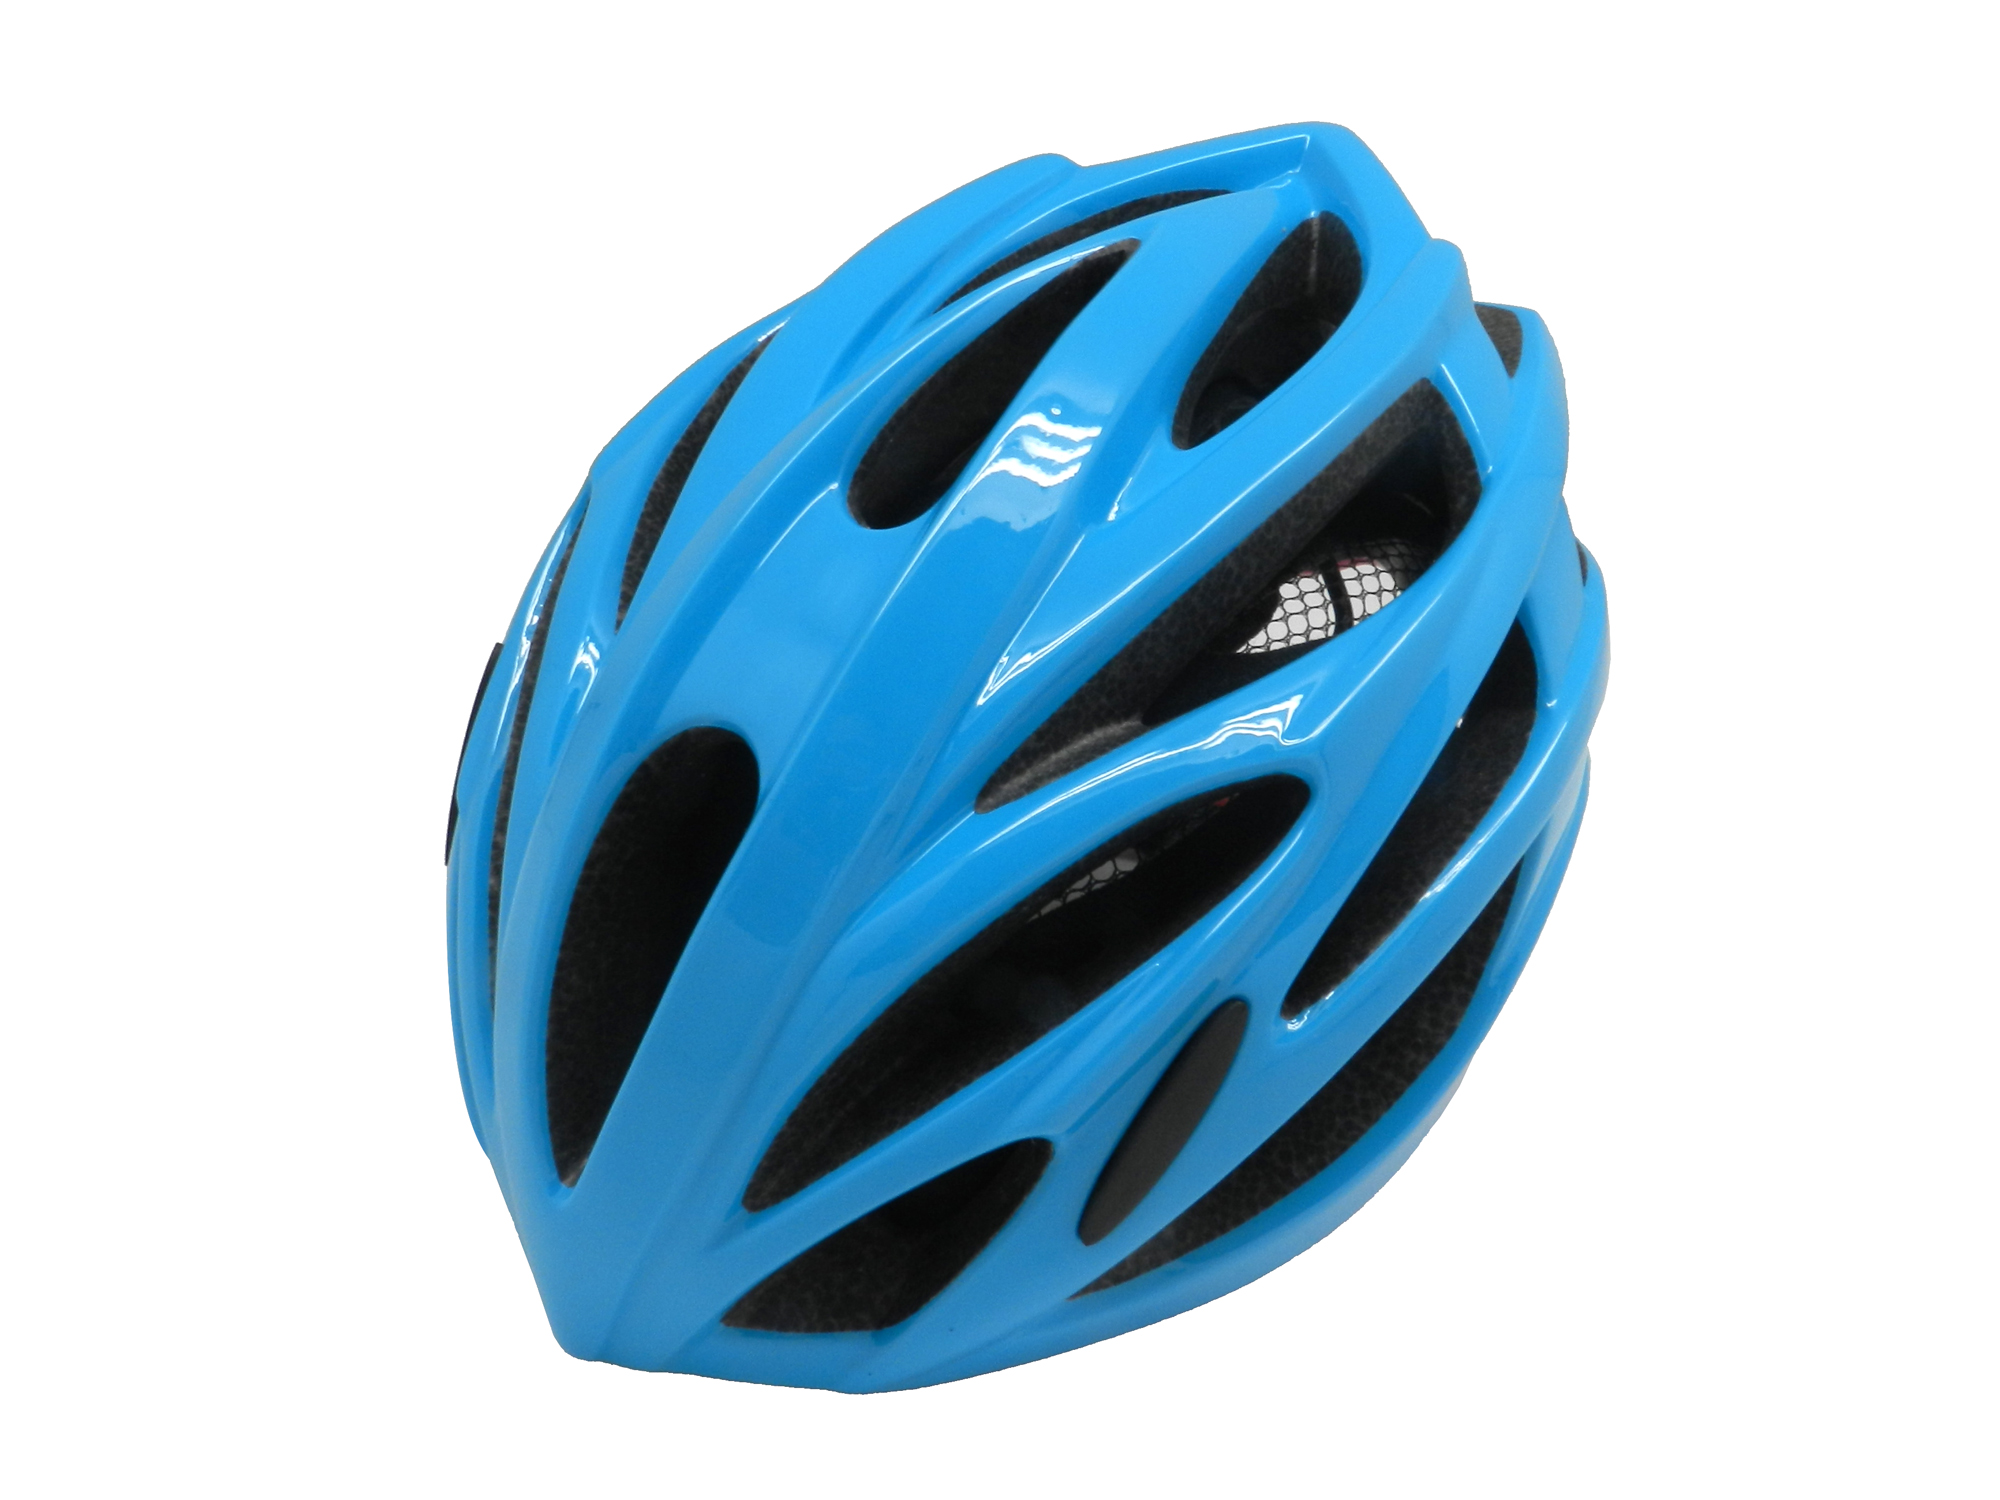 Best Road Bike Helmet For Women Au B091